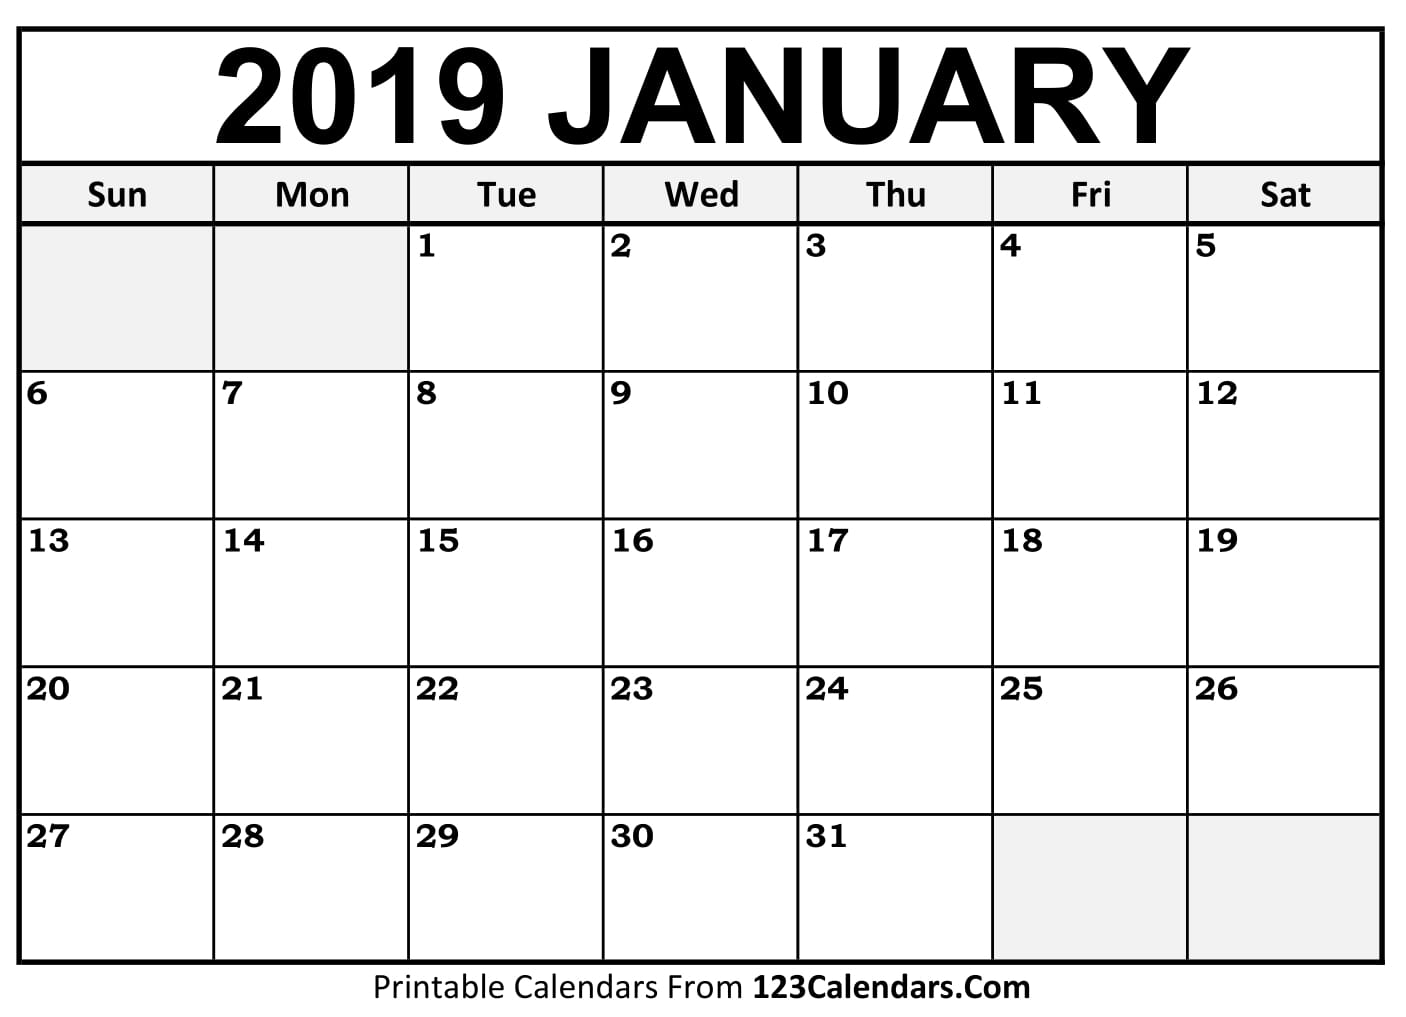 photograph relating to January Printable Calender identified as No cost Printable Calendar